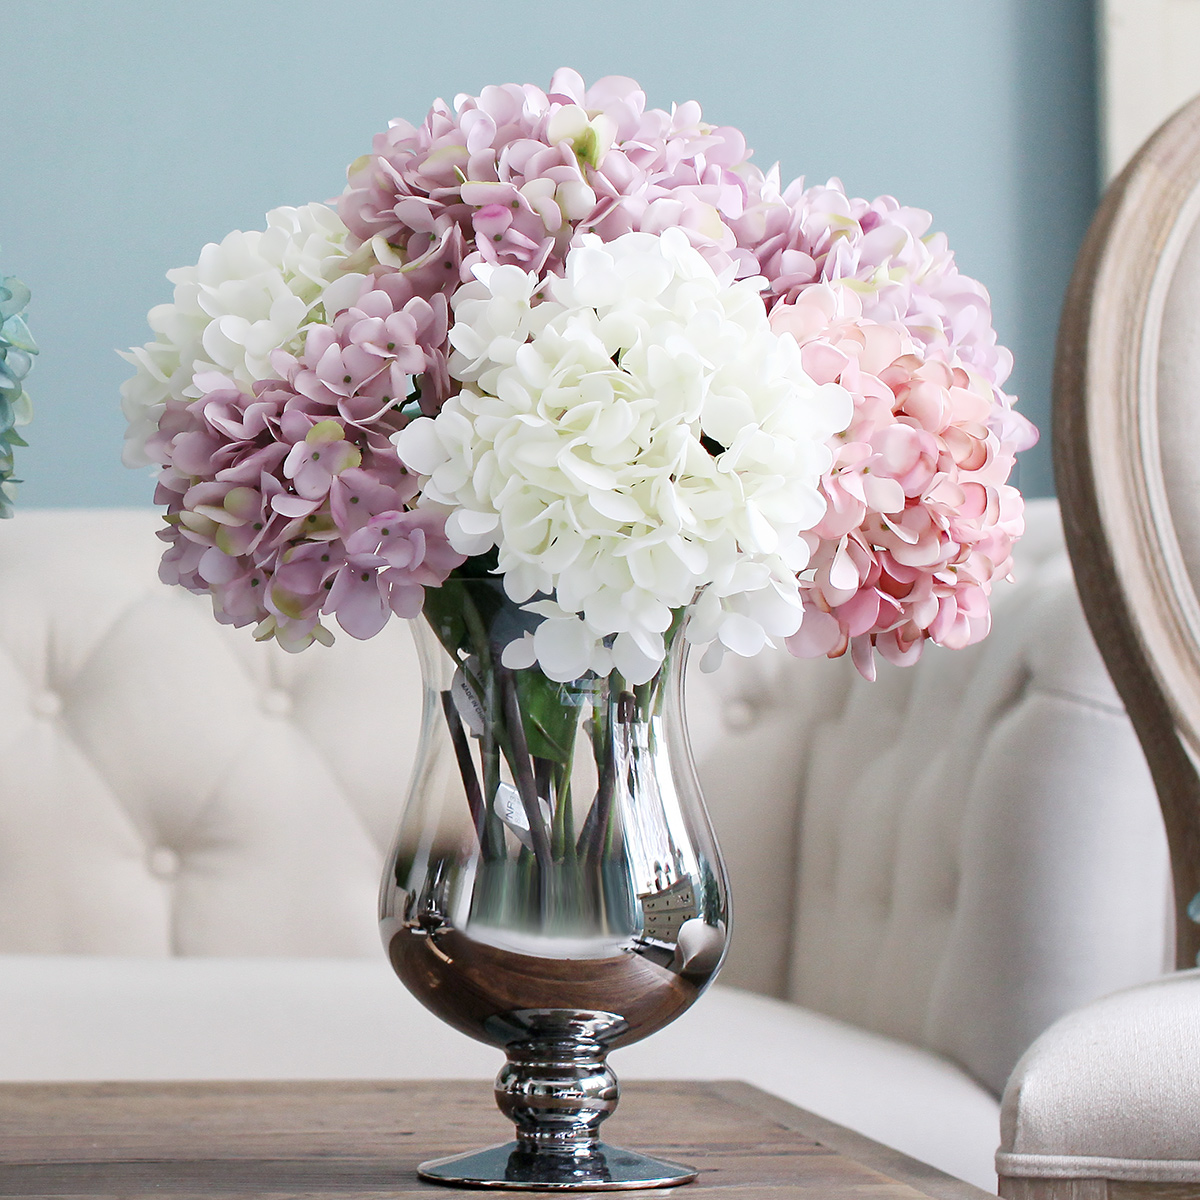 1pcs wedding delicate home decor bouquet artificial hydrangea 1pcs wedding delicate home decor bouquet artificial hydrangea centerpieces fillers bridal office crafts flower arrangement in artificial dried flowers junglespirit Image collections